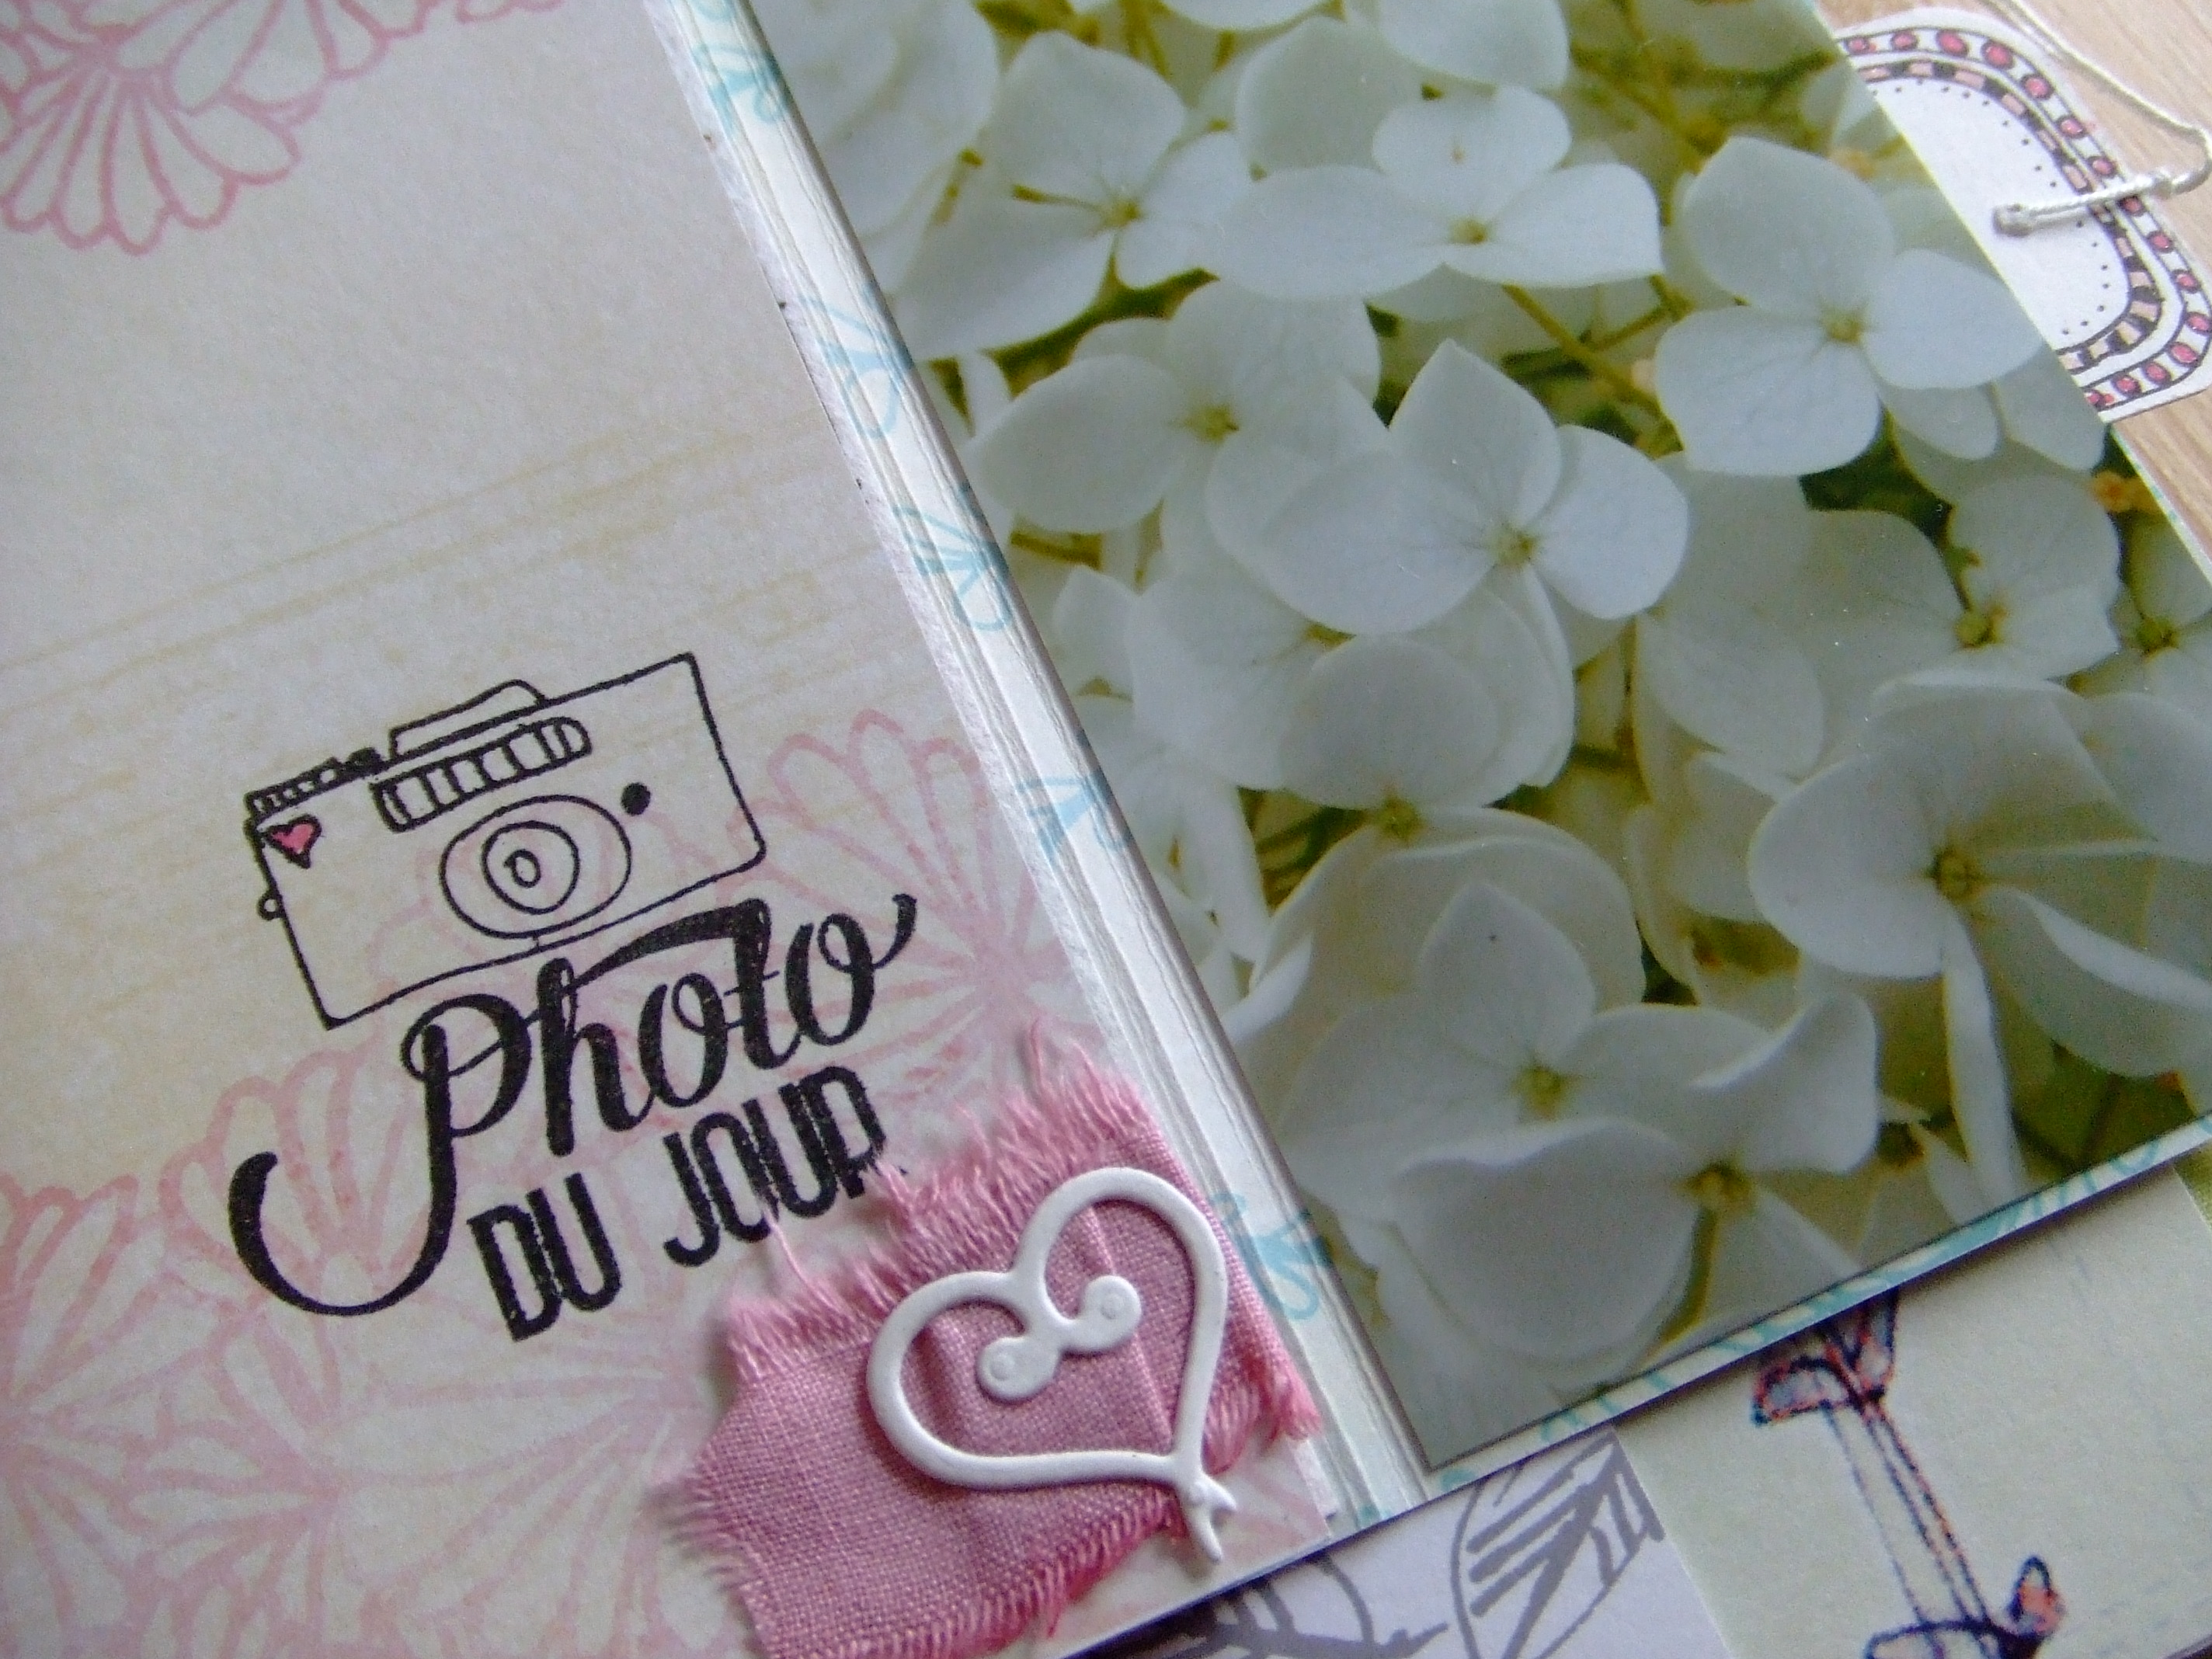 Vente en kit Ô Merveille mini-album scrap scrapbooking kits couleurs-en-folie tuto tutoriel scrap-plaisir encres tampons nature aquarelle isabelle-lafolie